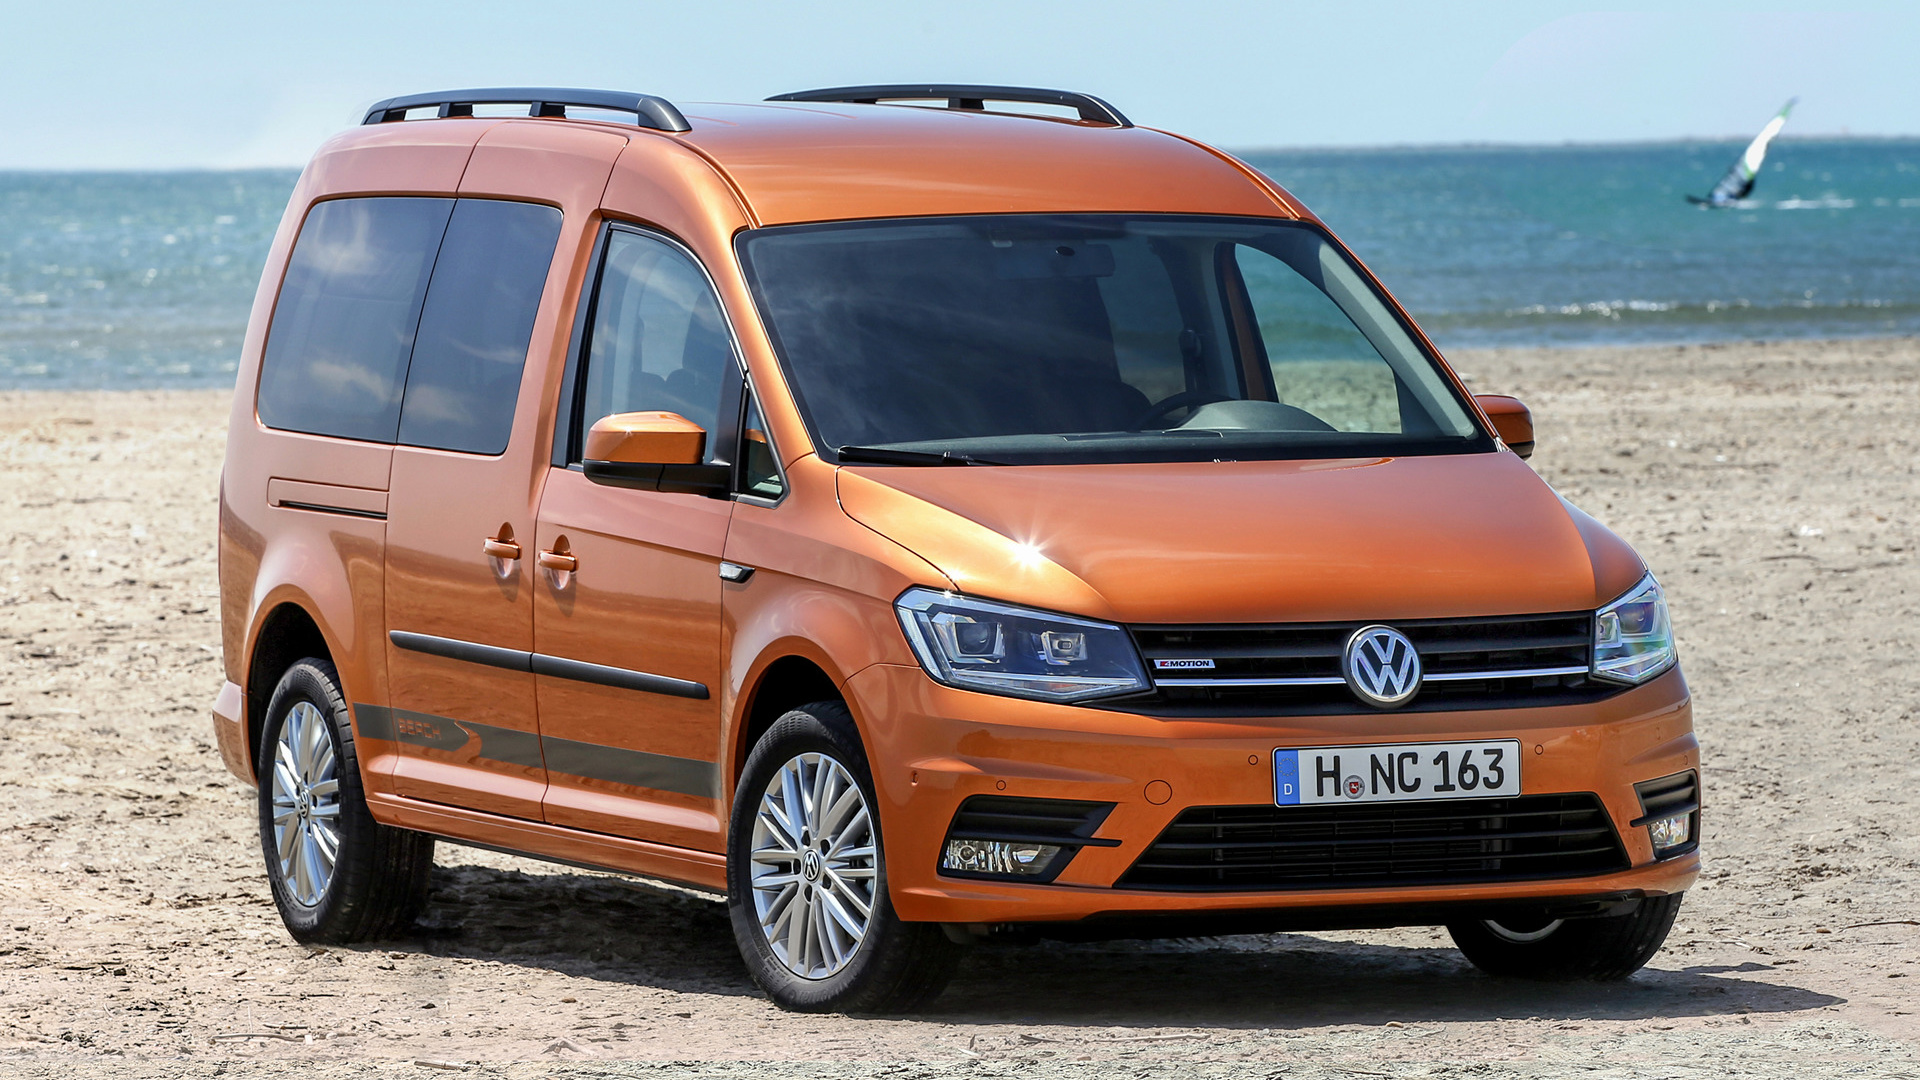 volkswagen caddy maxi beach 2015 wallpapers and hd images car pixel. Black Bedroom Furniture Sets. Home Design Ideas